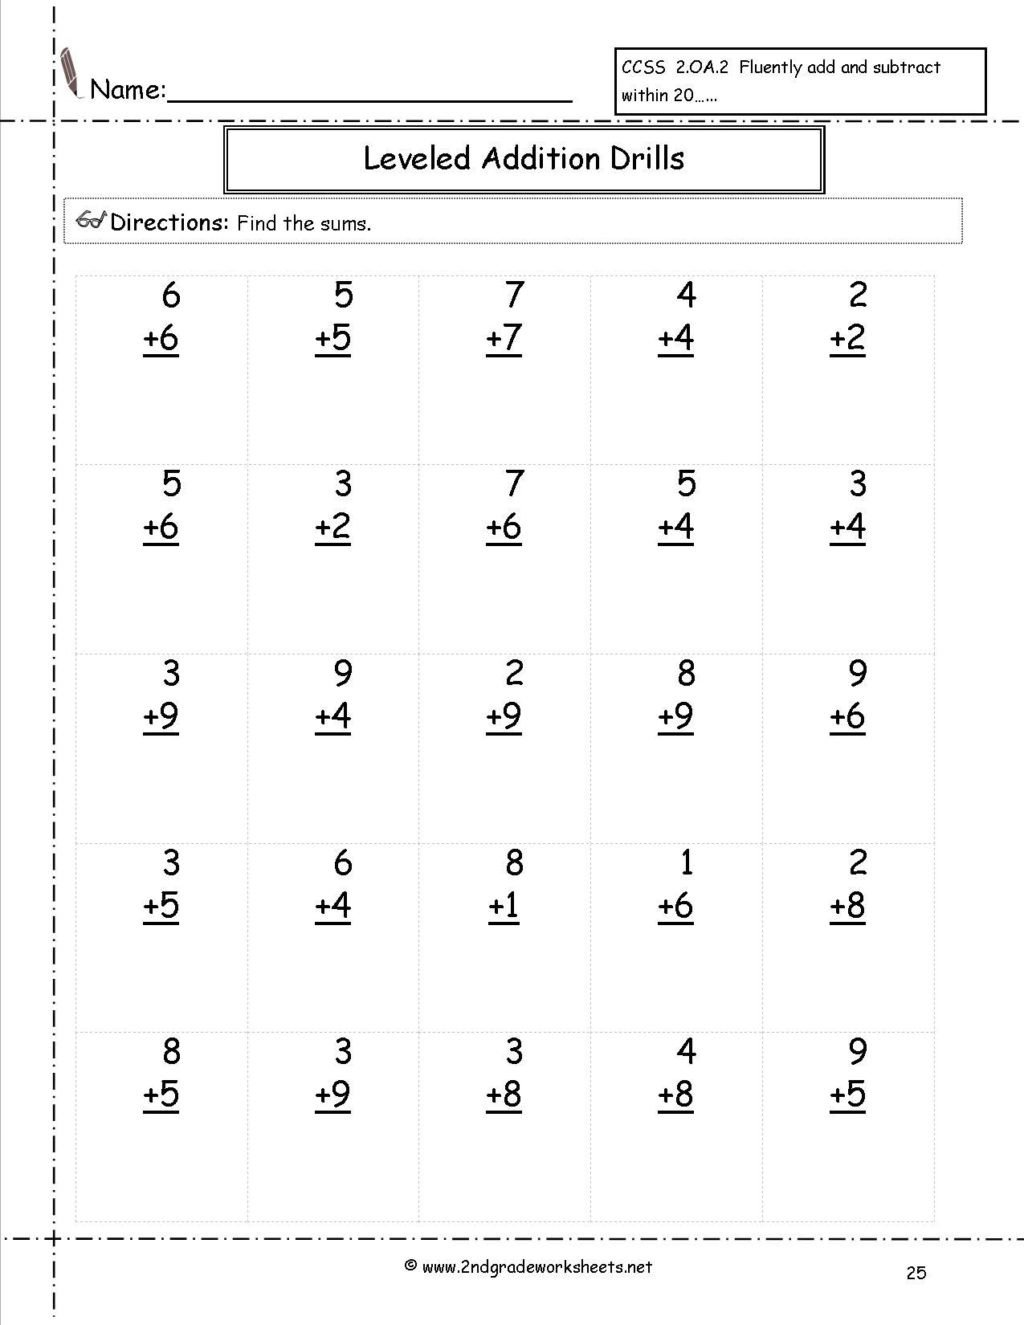 2nd Grade Measurement Worksheets Math Worksheet Math Worksheet Marvelous Practice for 2nd